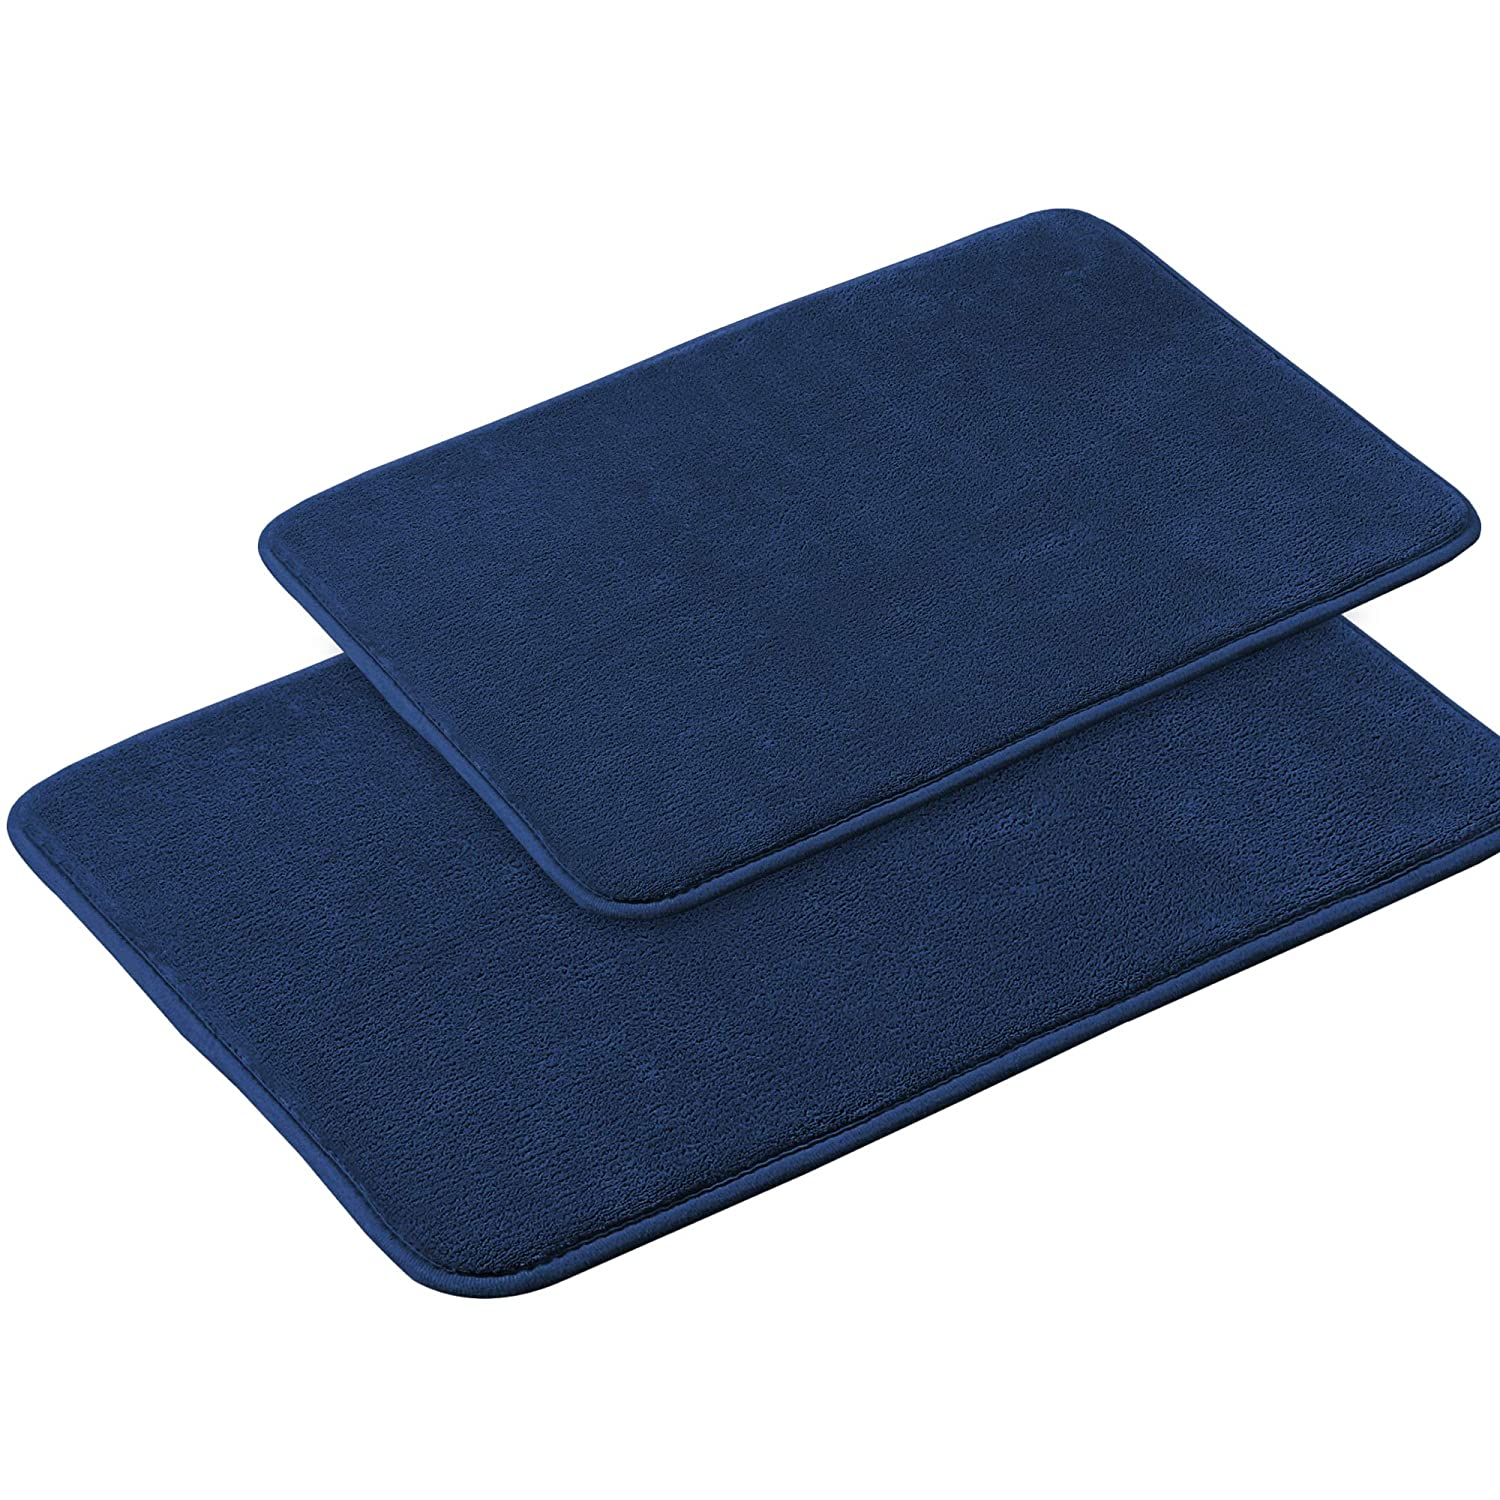 Soft Memory Foam Microfiber Bath Rugs Extra Absorbent Flannel Bath Mats Machine-Washable Bathroom Mat Set, 2 Piece, 20x32/17x24 Inch Navy Flamingo P